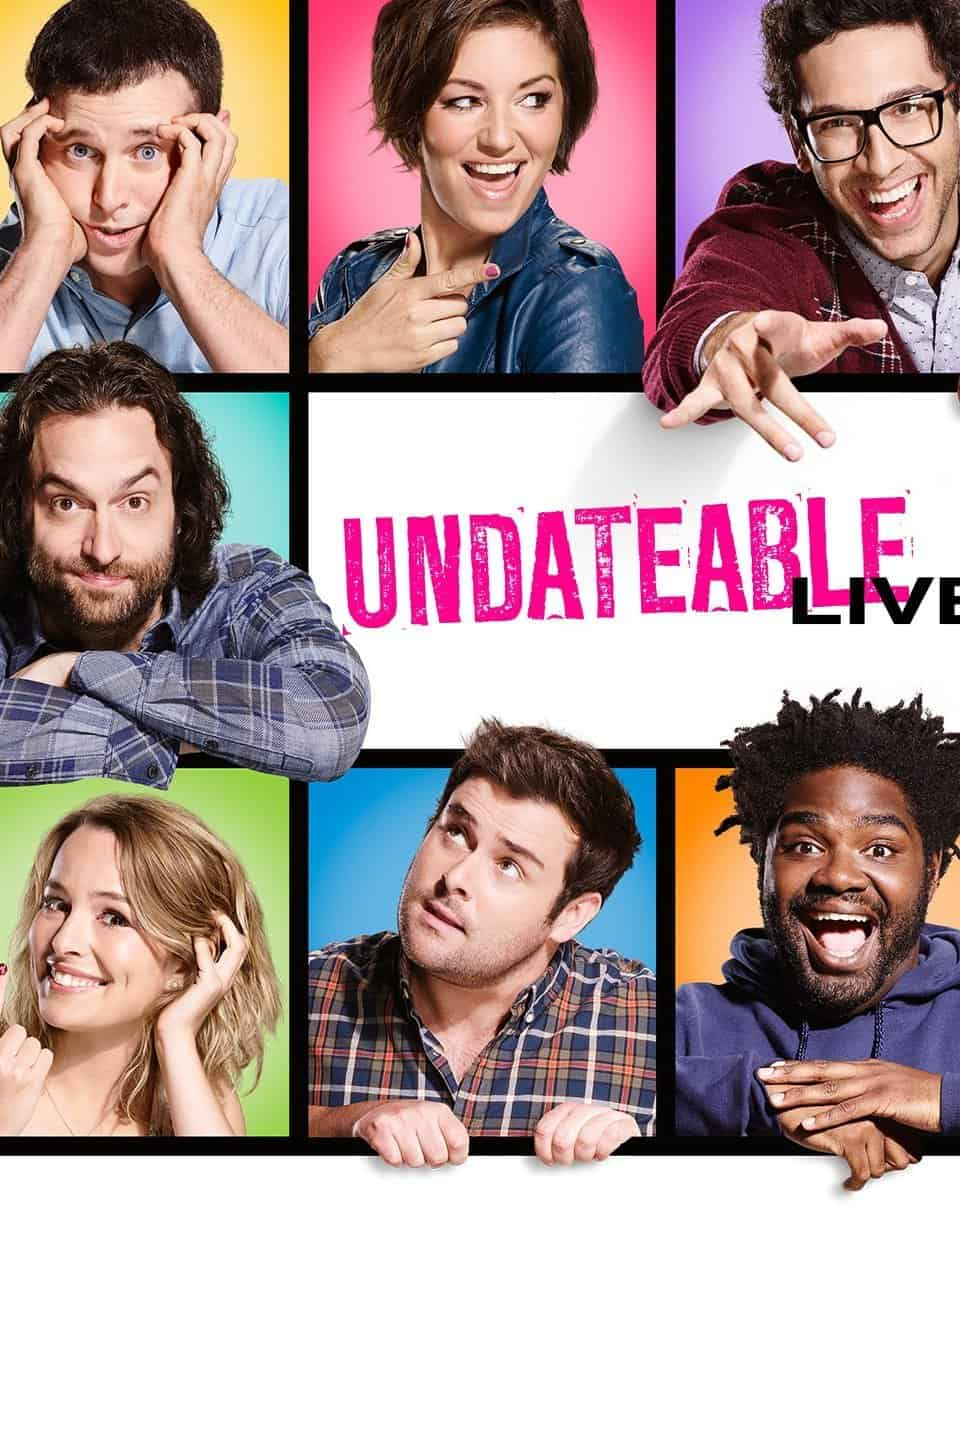 Undateable, 2014